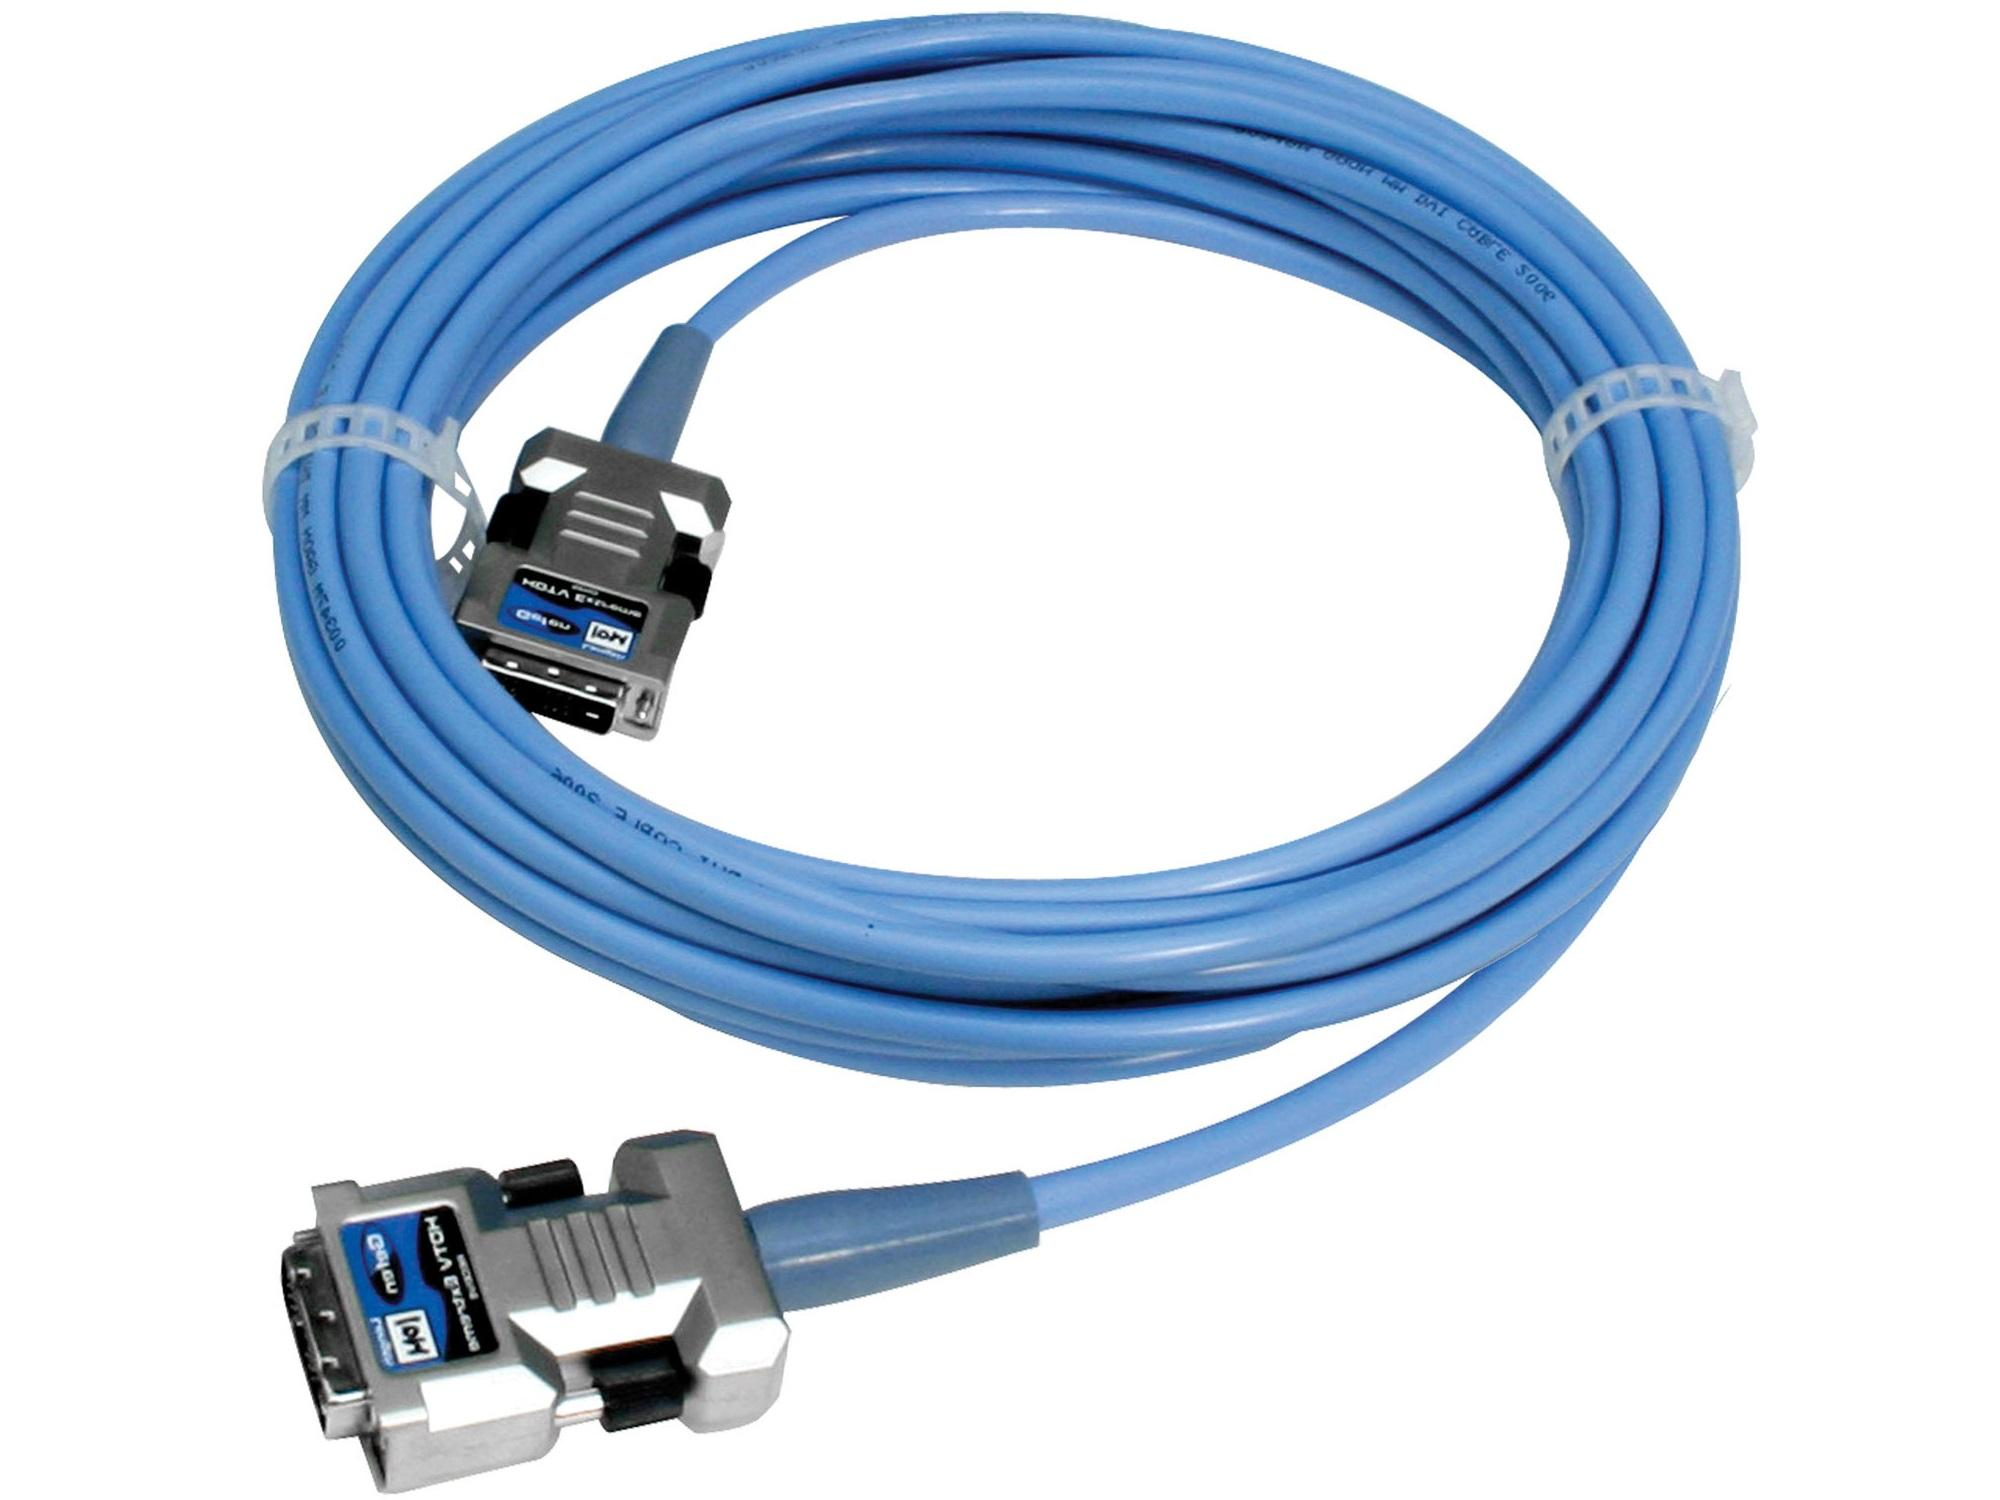 CAB-HDTV-50MM HDTV DVI-D Fiber Optic Cable 50 ft (M-M) by Gefen